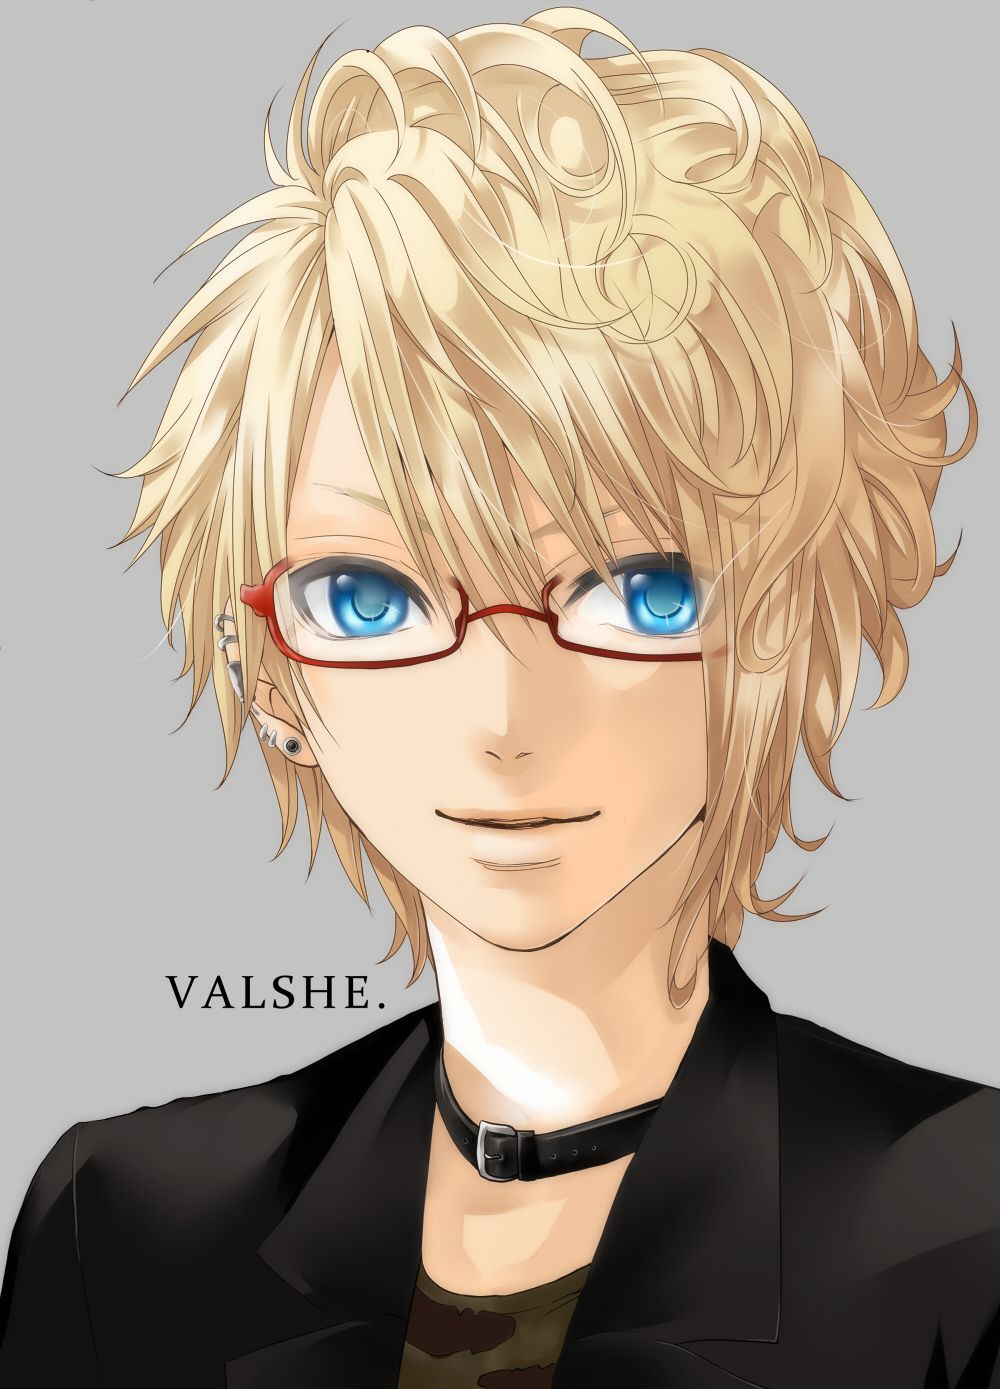 Valshe From Vocaloid Anime Guys With Glasses Anime Guys Shirtless Anime Guys